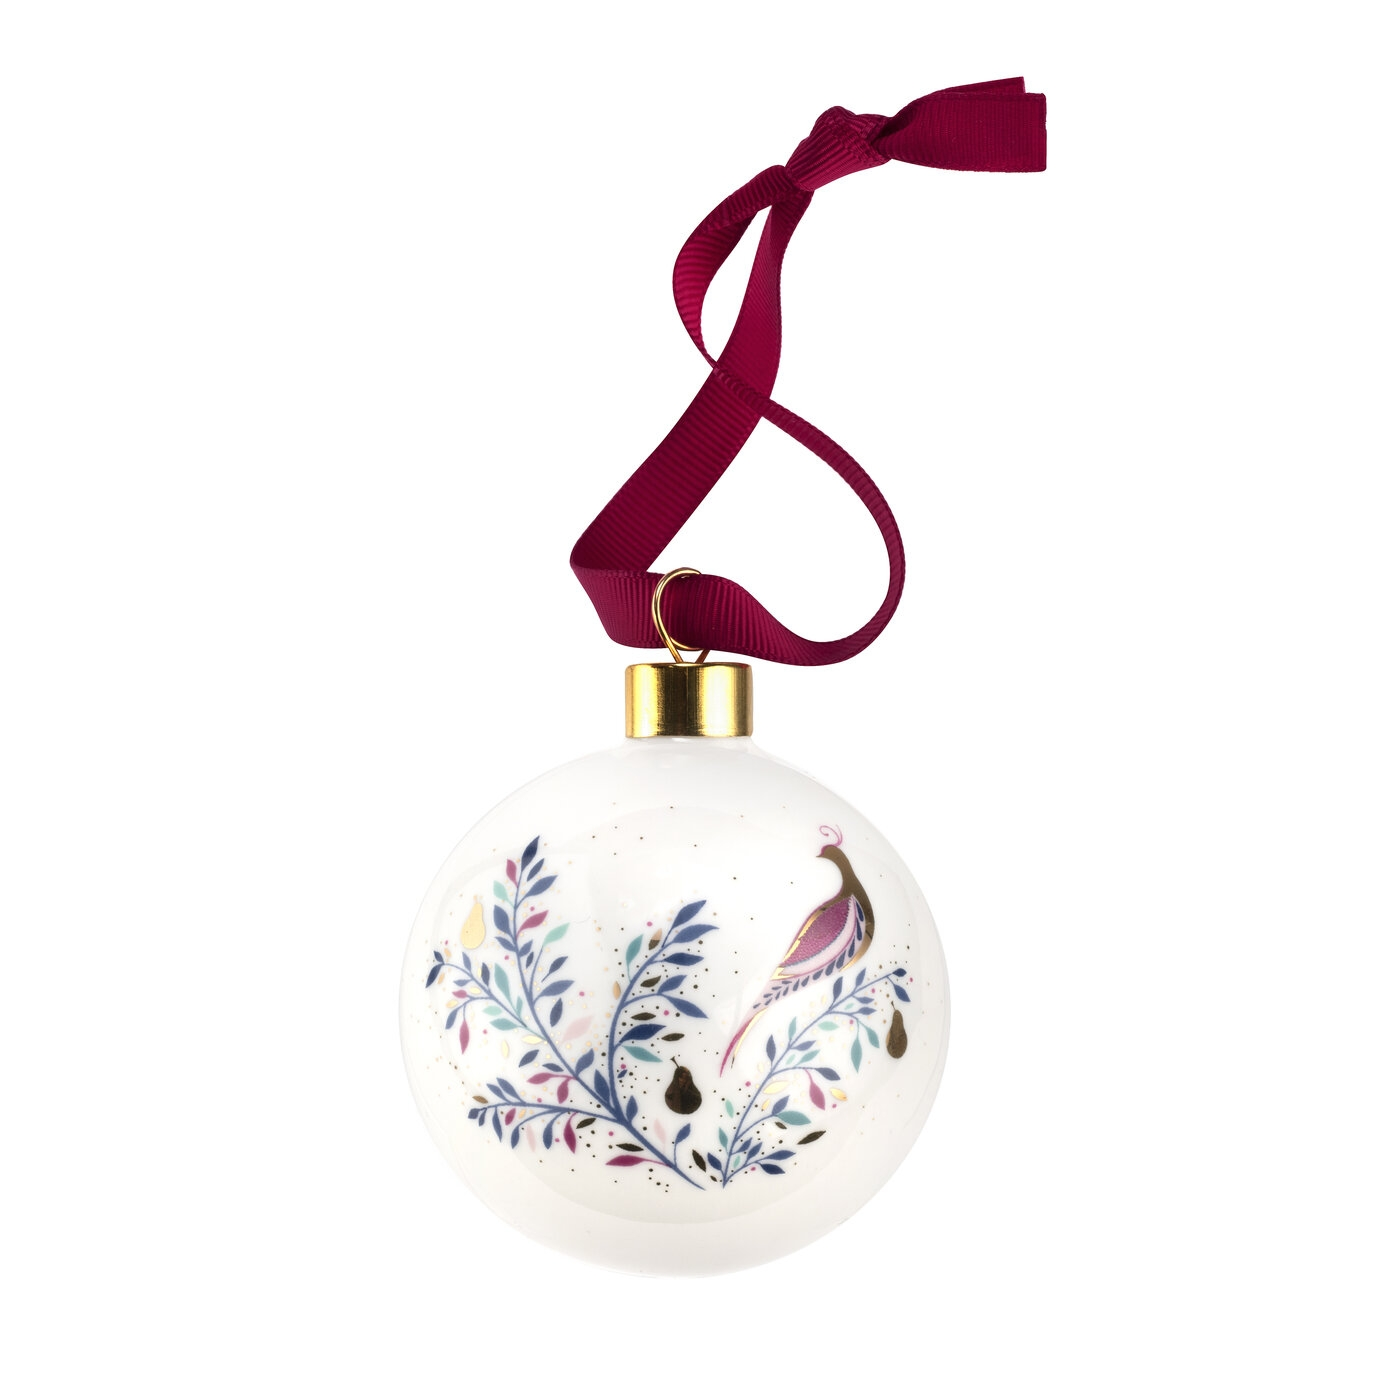 Sara Miller for Portmeirion Partridge In a Pear Tree Bauble image number 0